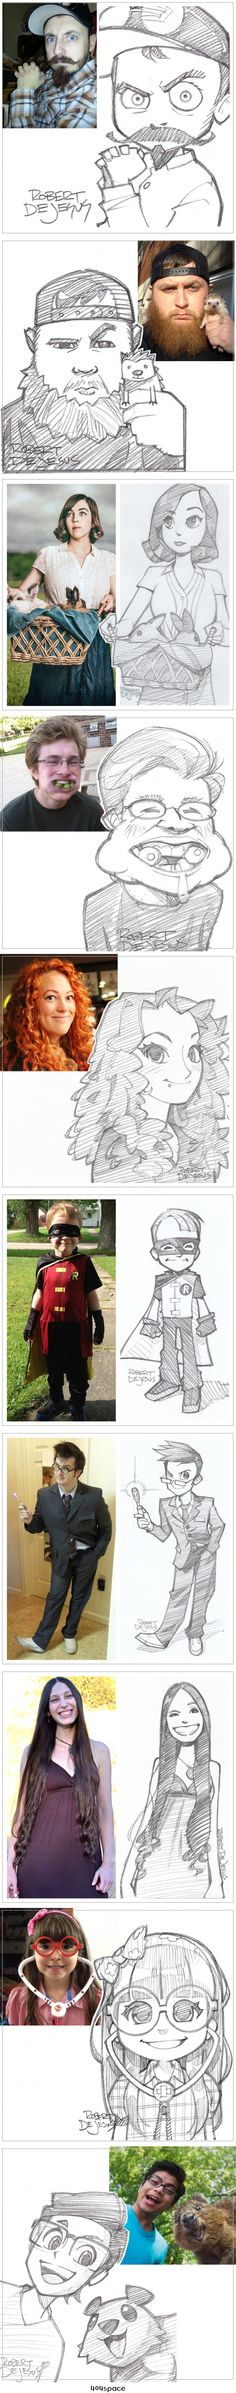 Creative Artist Robert DeJesus Turns Strangers' Photographs Into Anime-Inspired Sketches (10 Pictures + Clip)